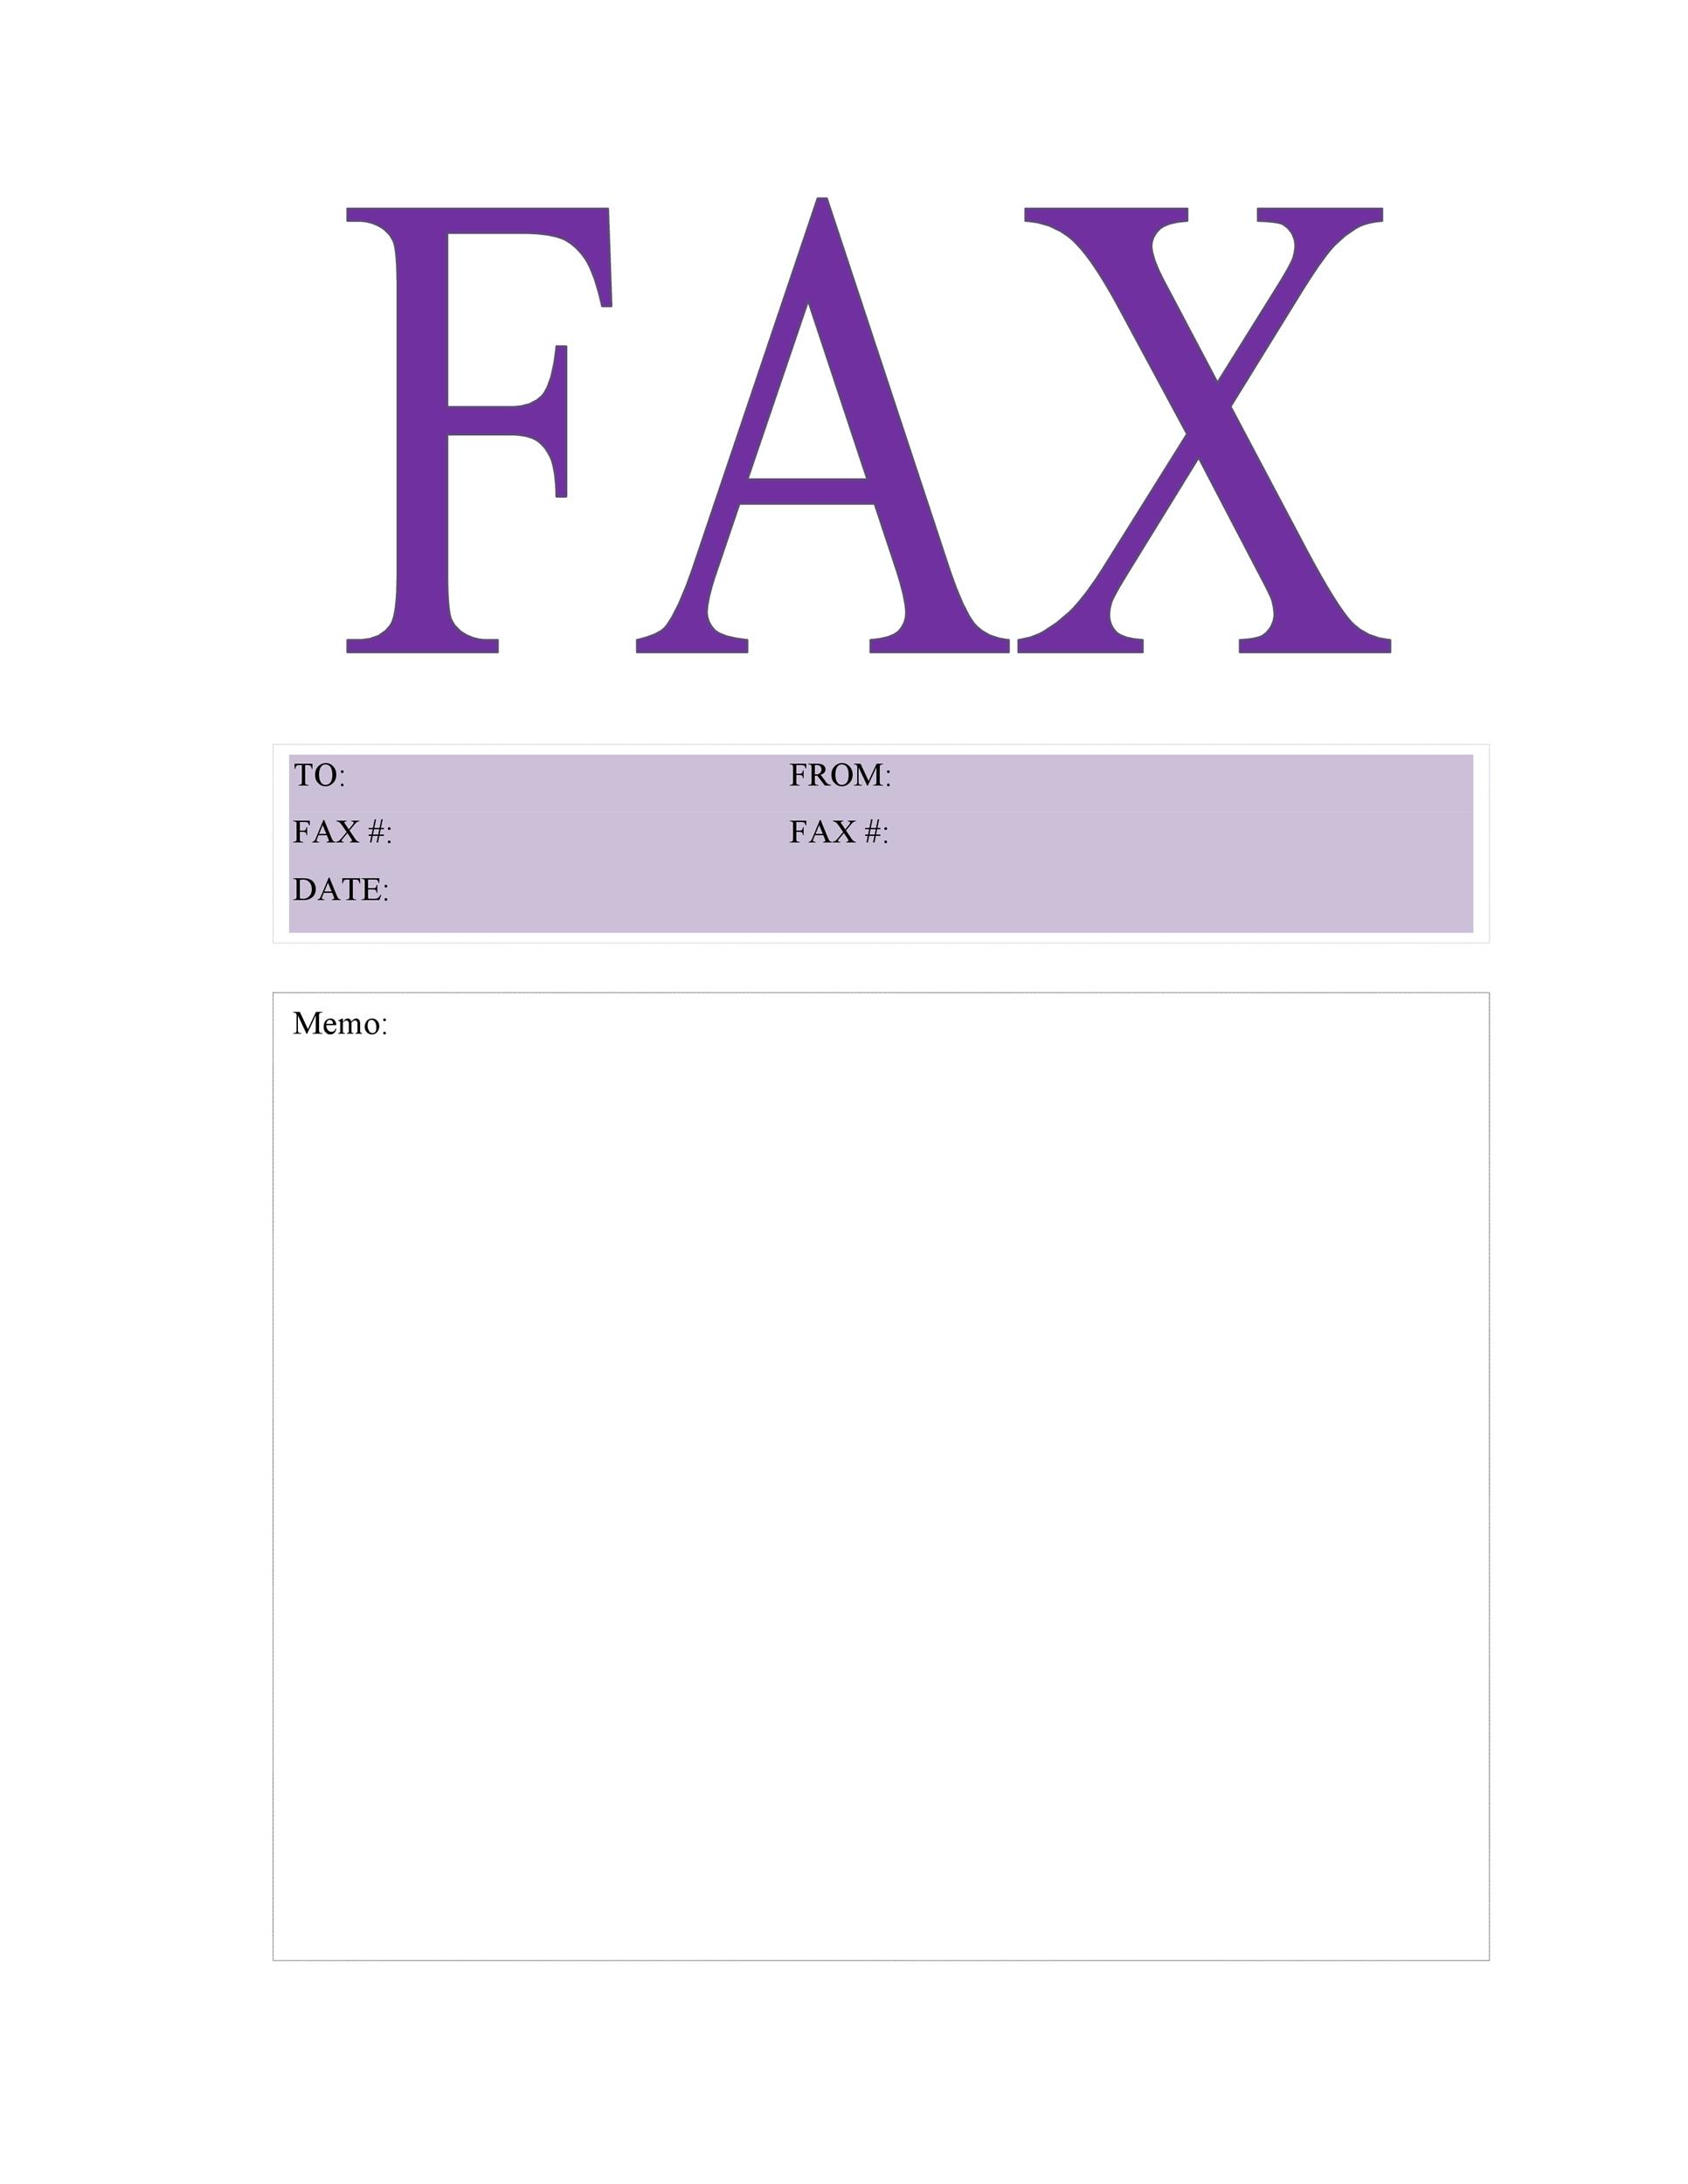 40 Printable Fax Cover Sheet Templates Template Lab – Fax Cover Sheets Template